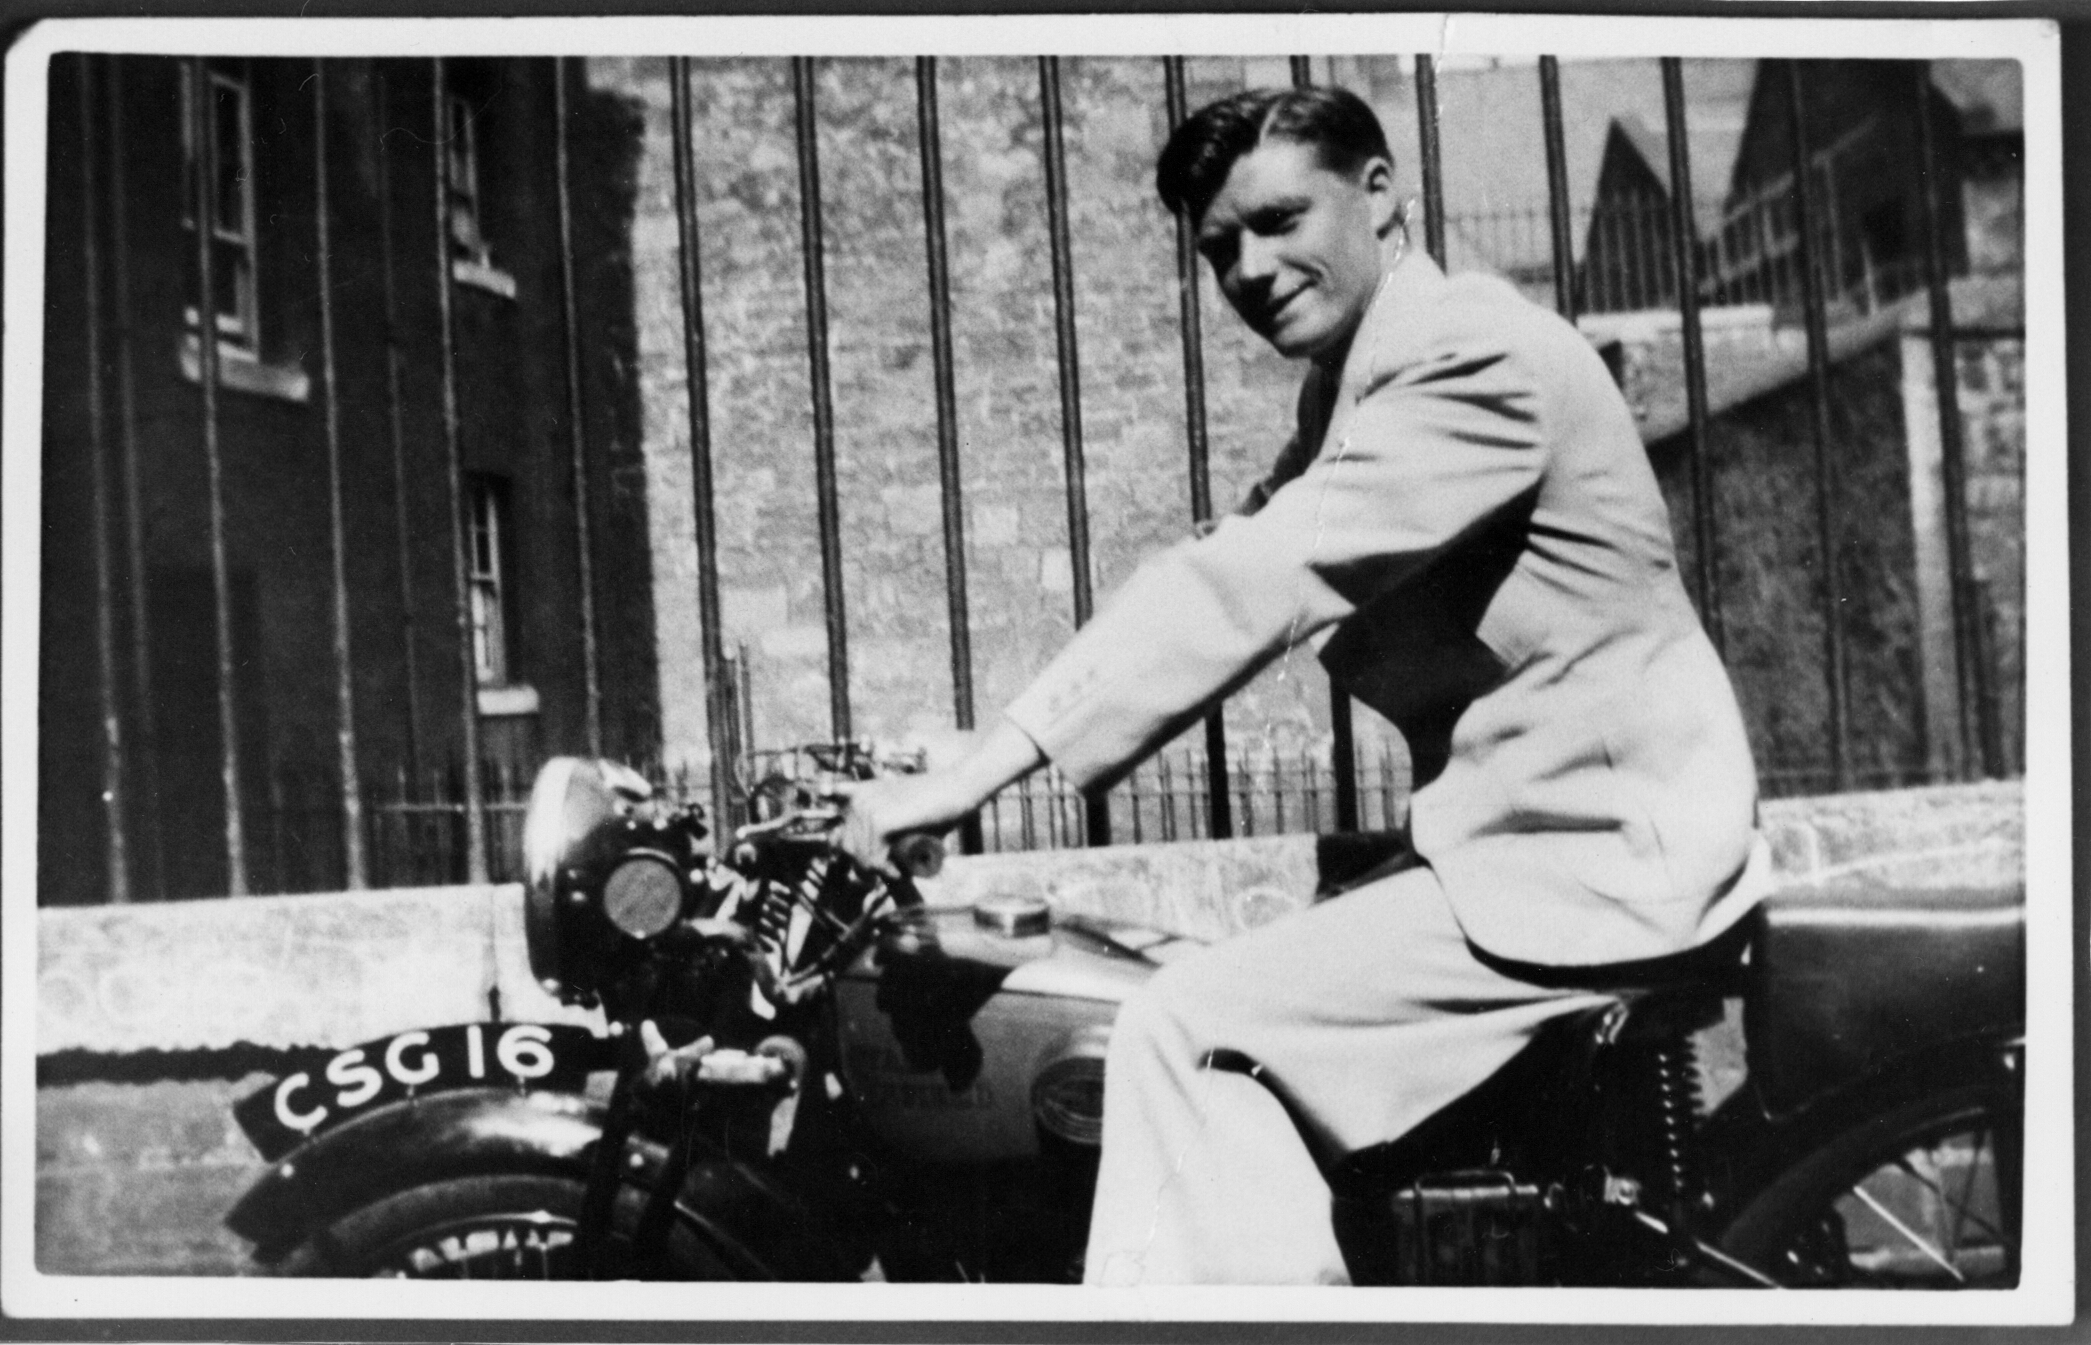 Motorcyclist With His Royal Enfield Motorbike 1938